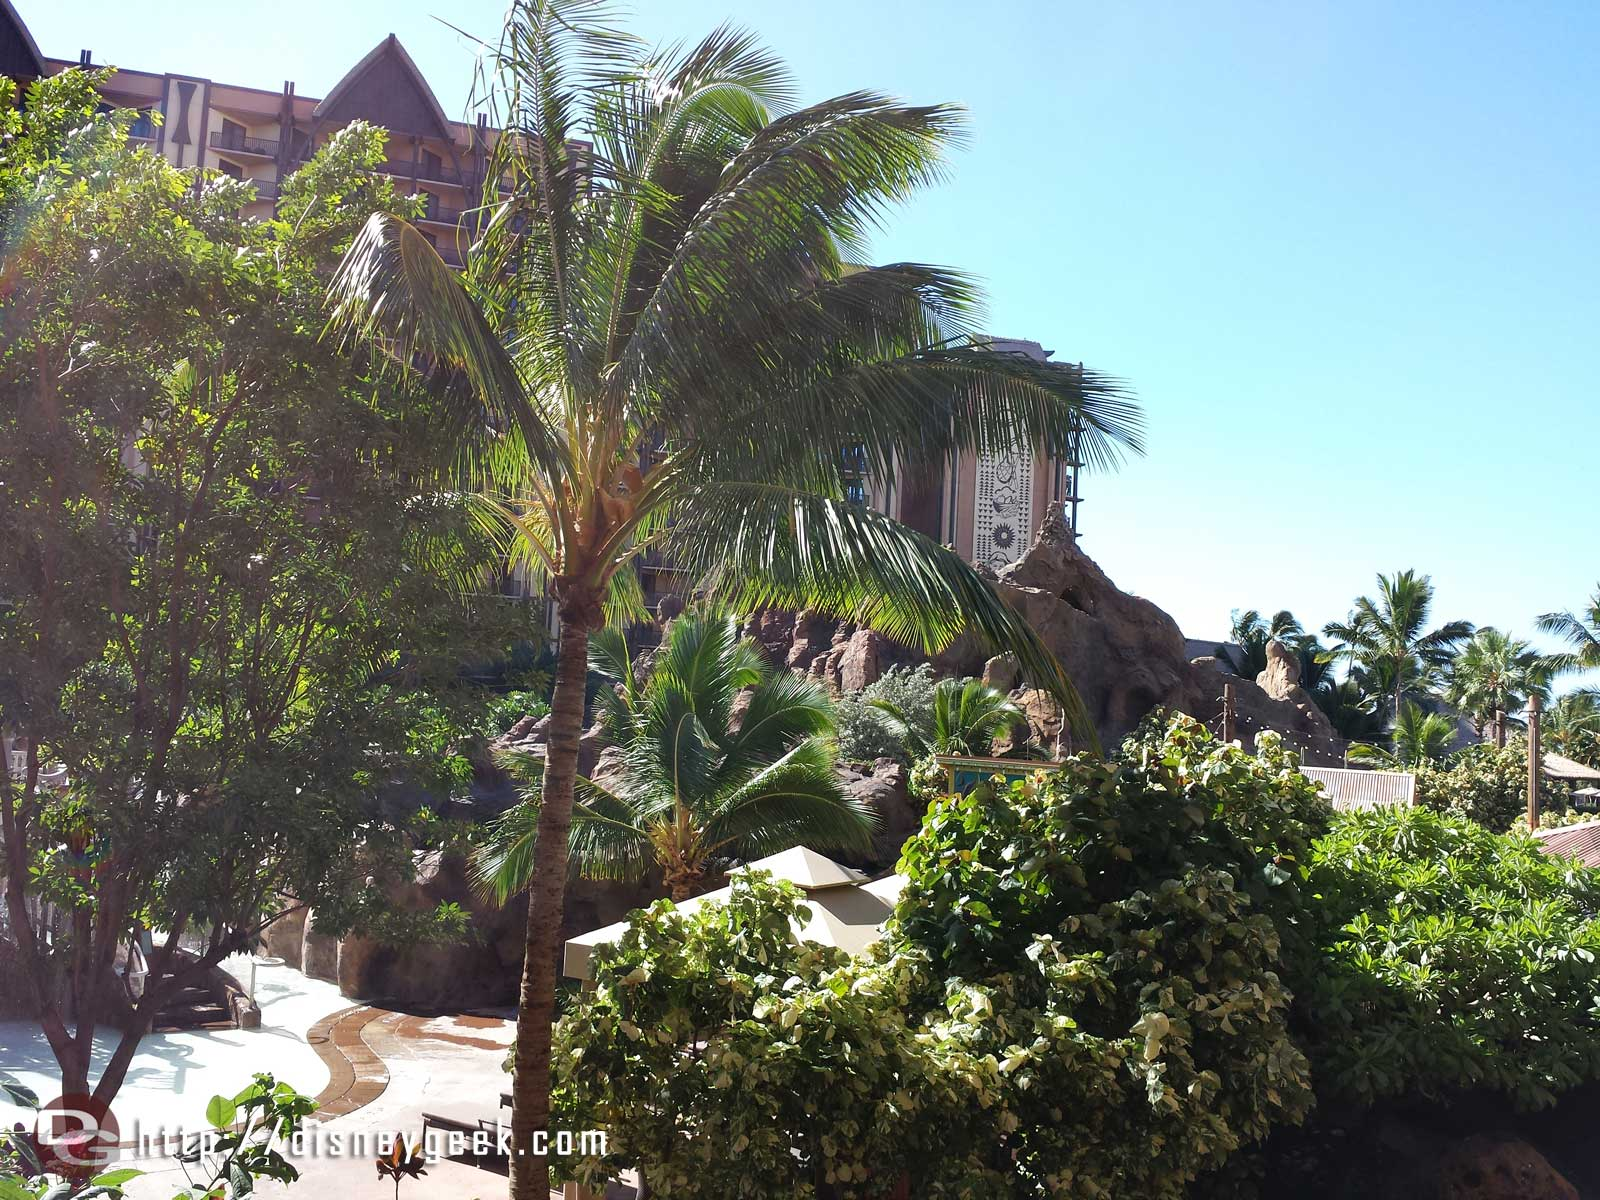 Enjoying the view from our balcony at #Aulani before checking out of the room